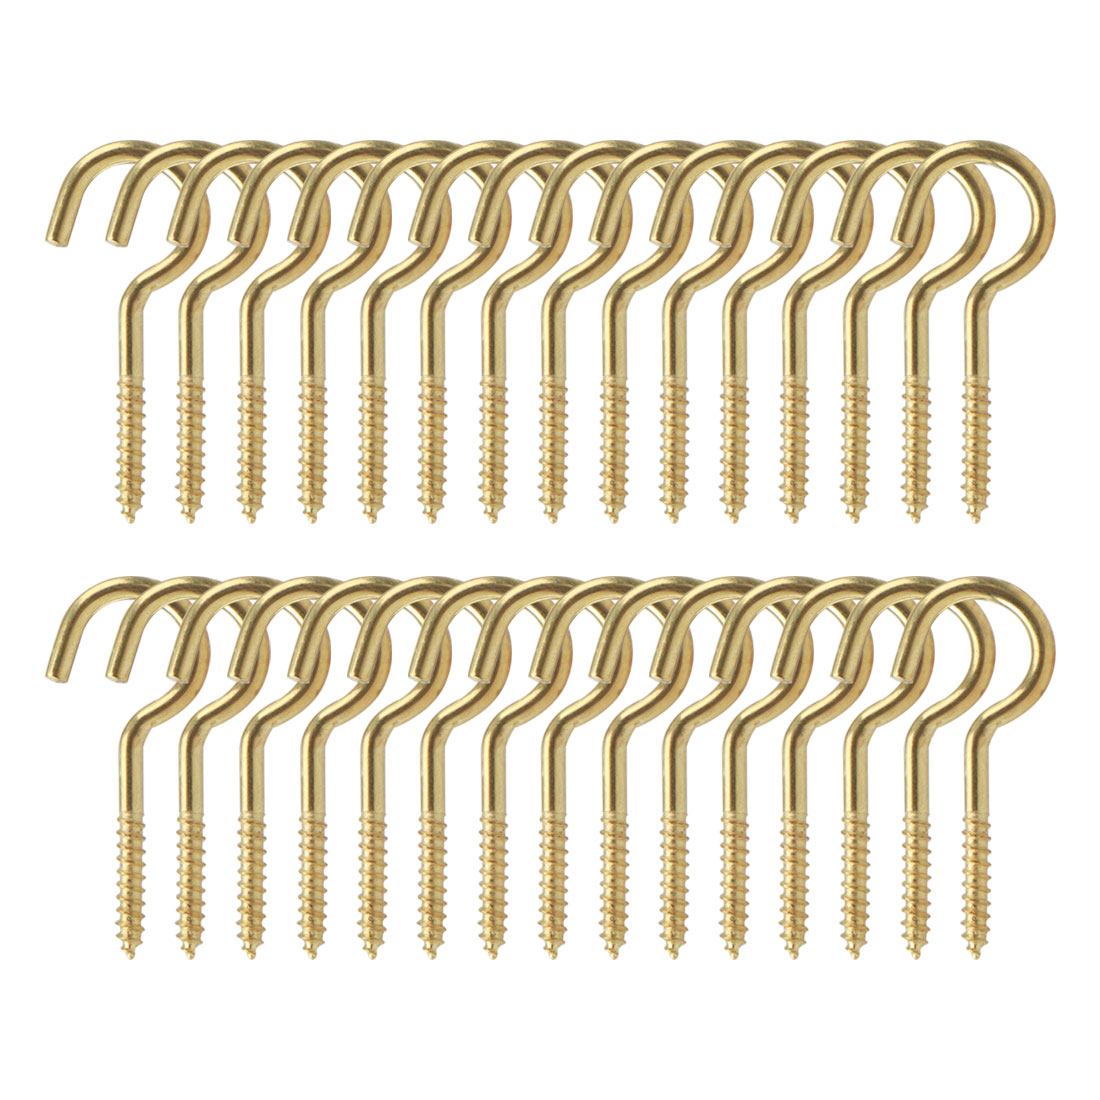 30pcs Cup Ceiling Hooks 3/4 Inch Durable Metal Screw in Hanger Hooks Gold Tone